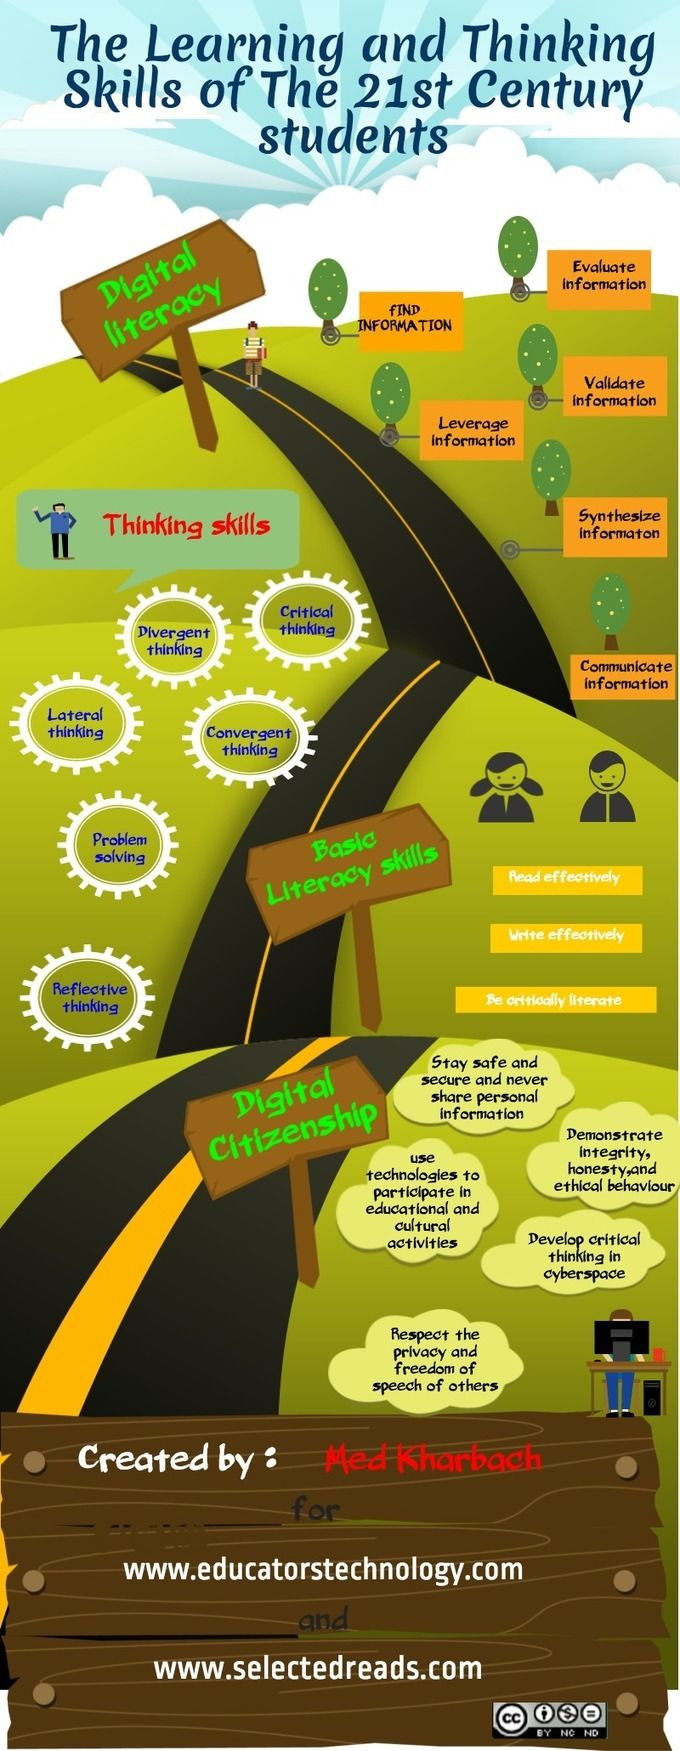 A Free Poster on The Learning and Thinking Skills of The 21st Century Students | ETML